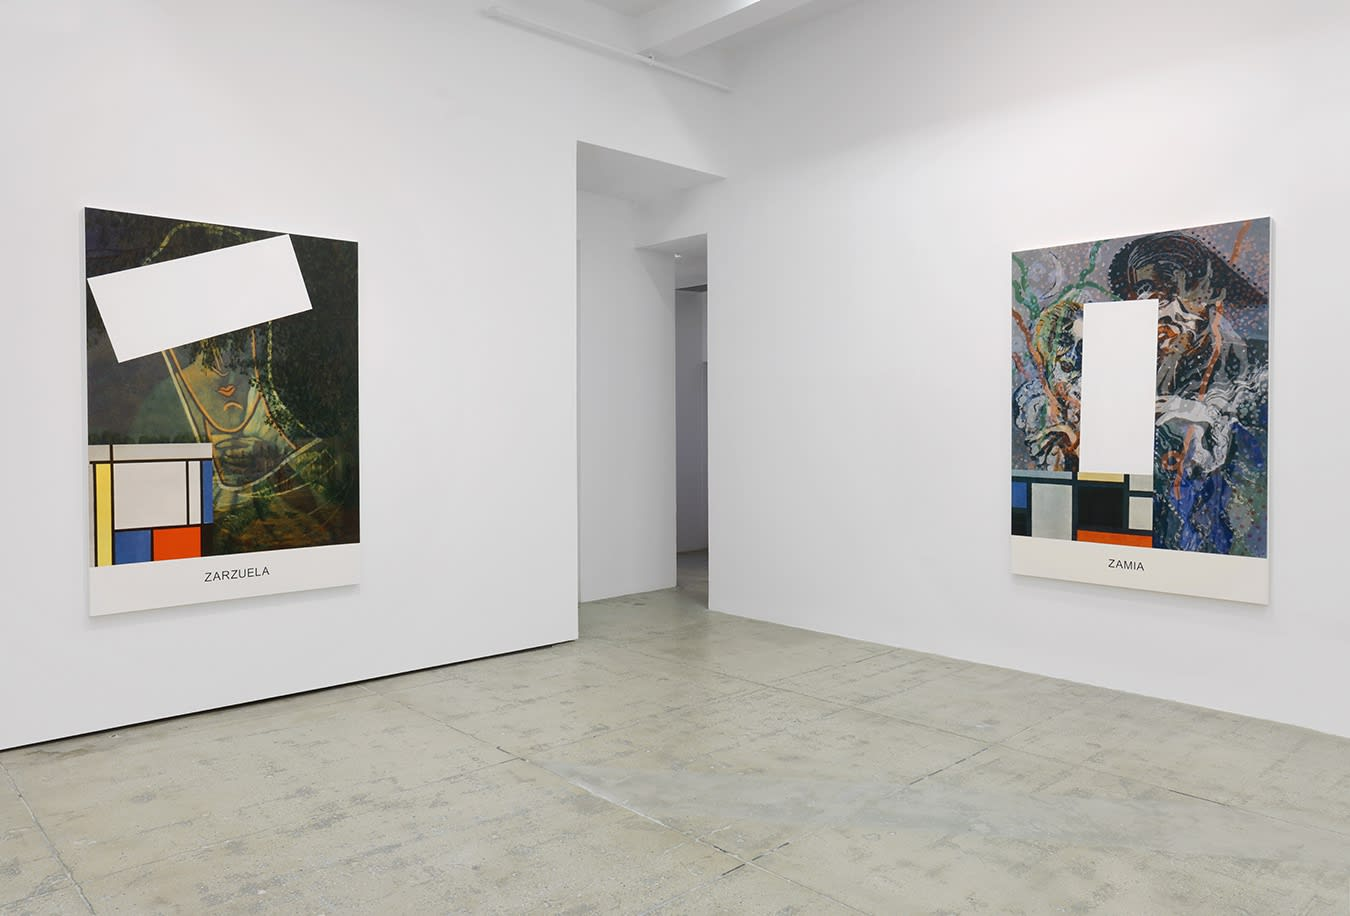 2 large colorful paintings with text and geometric shapes hang in a white gallery space.